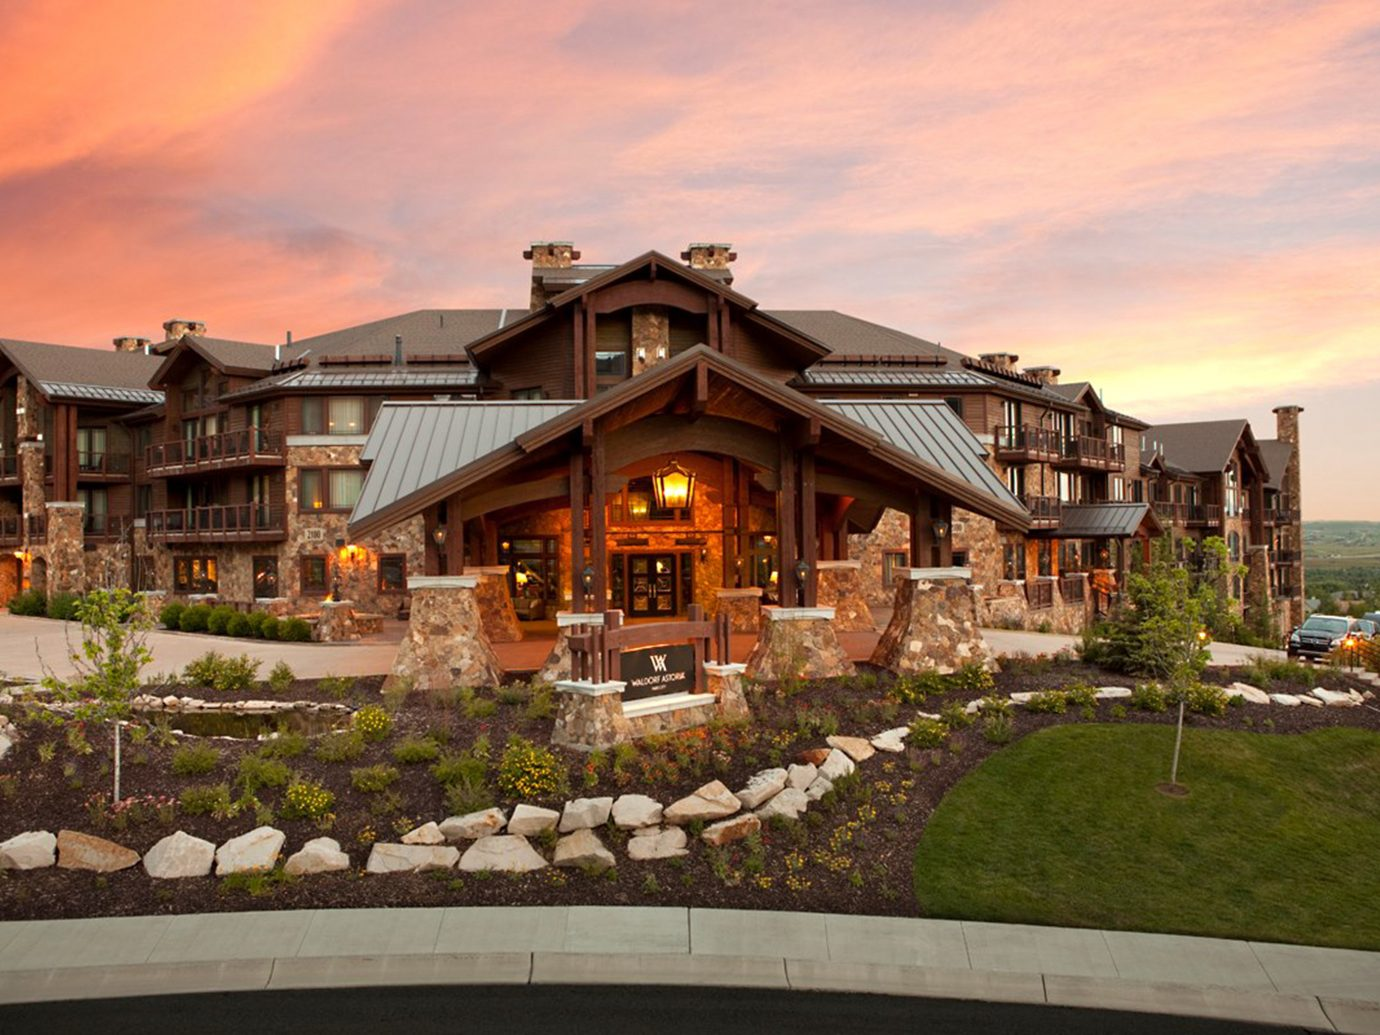 Architecture Buildings Exterior Mountains Trip Ideas sky outdoor grass house estate Town home residential area building neighbourhood vacation suburb mansion landscape facade Village Resort stone